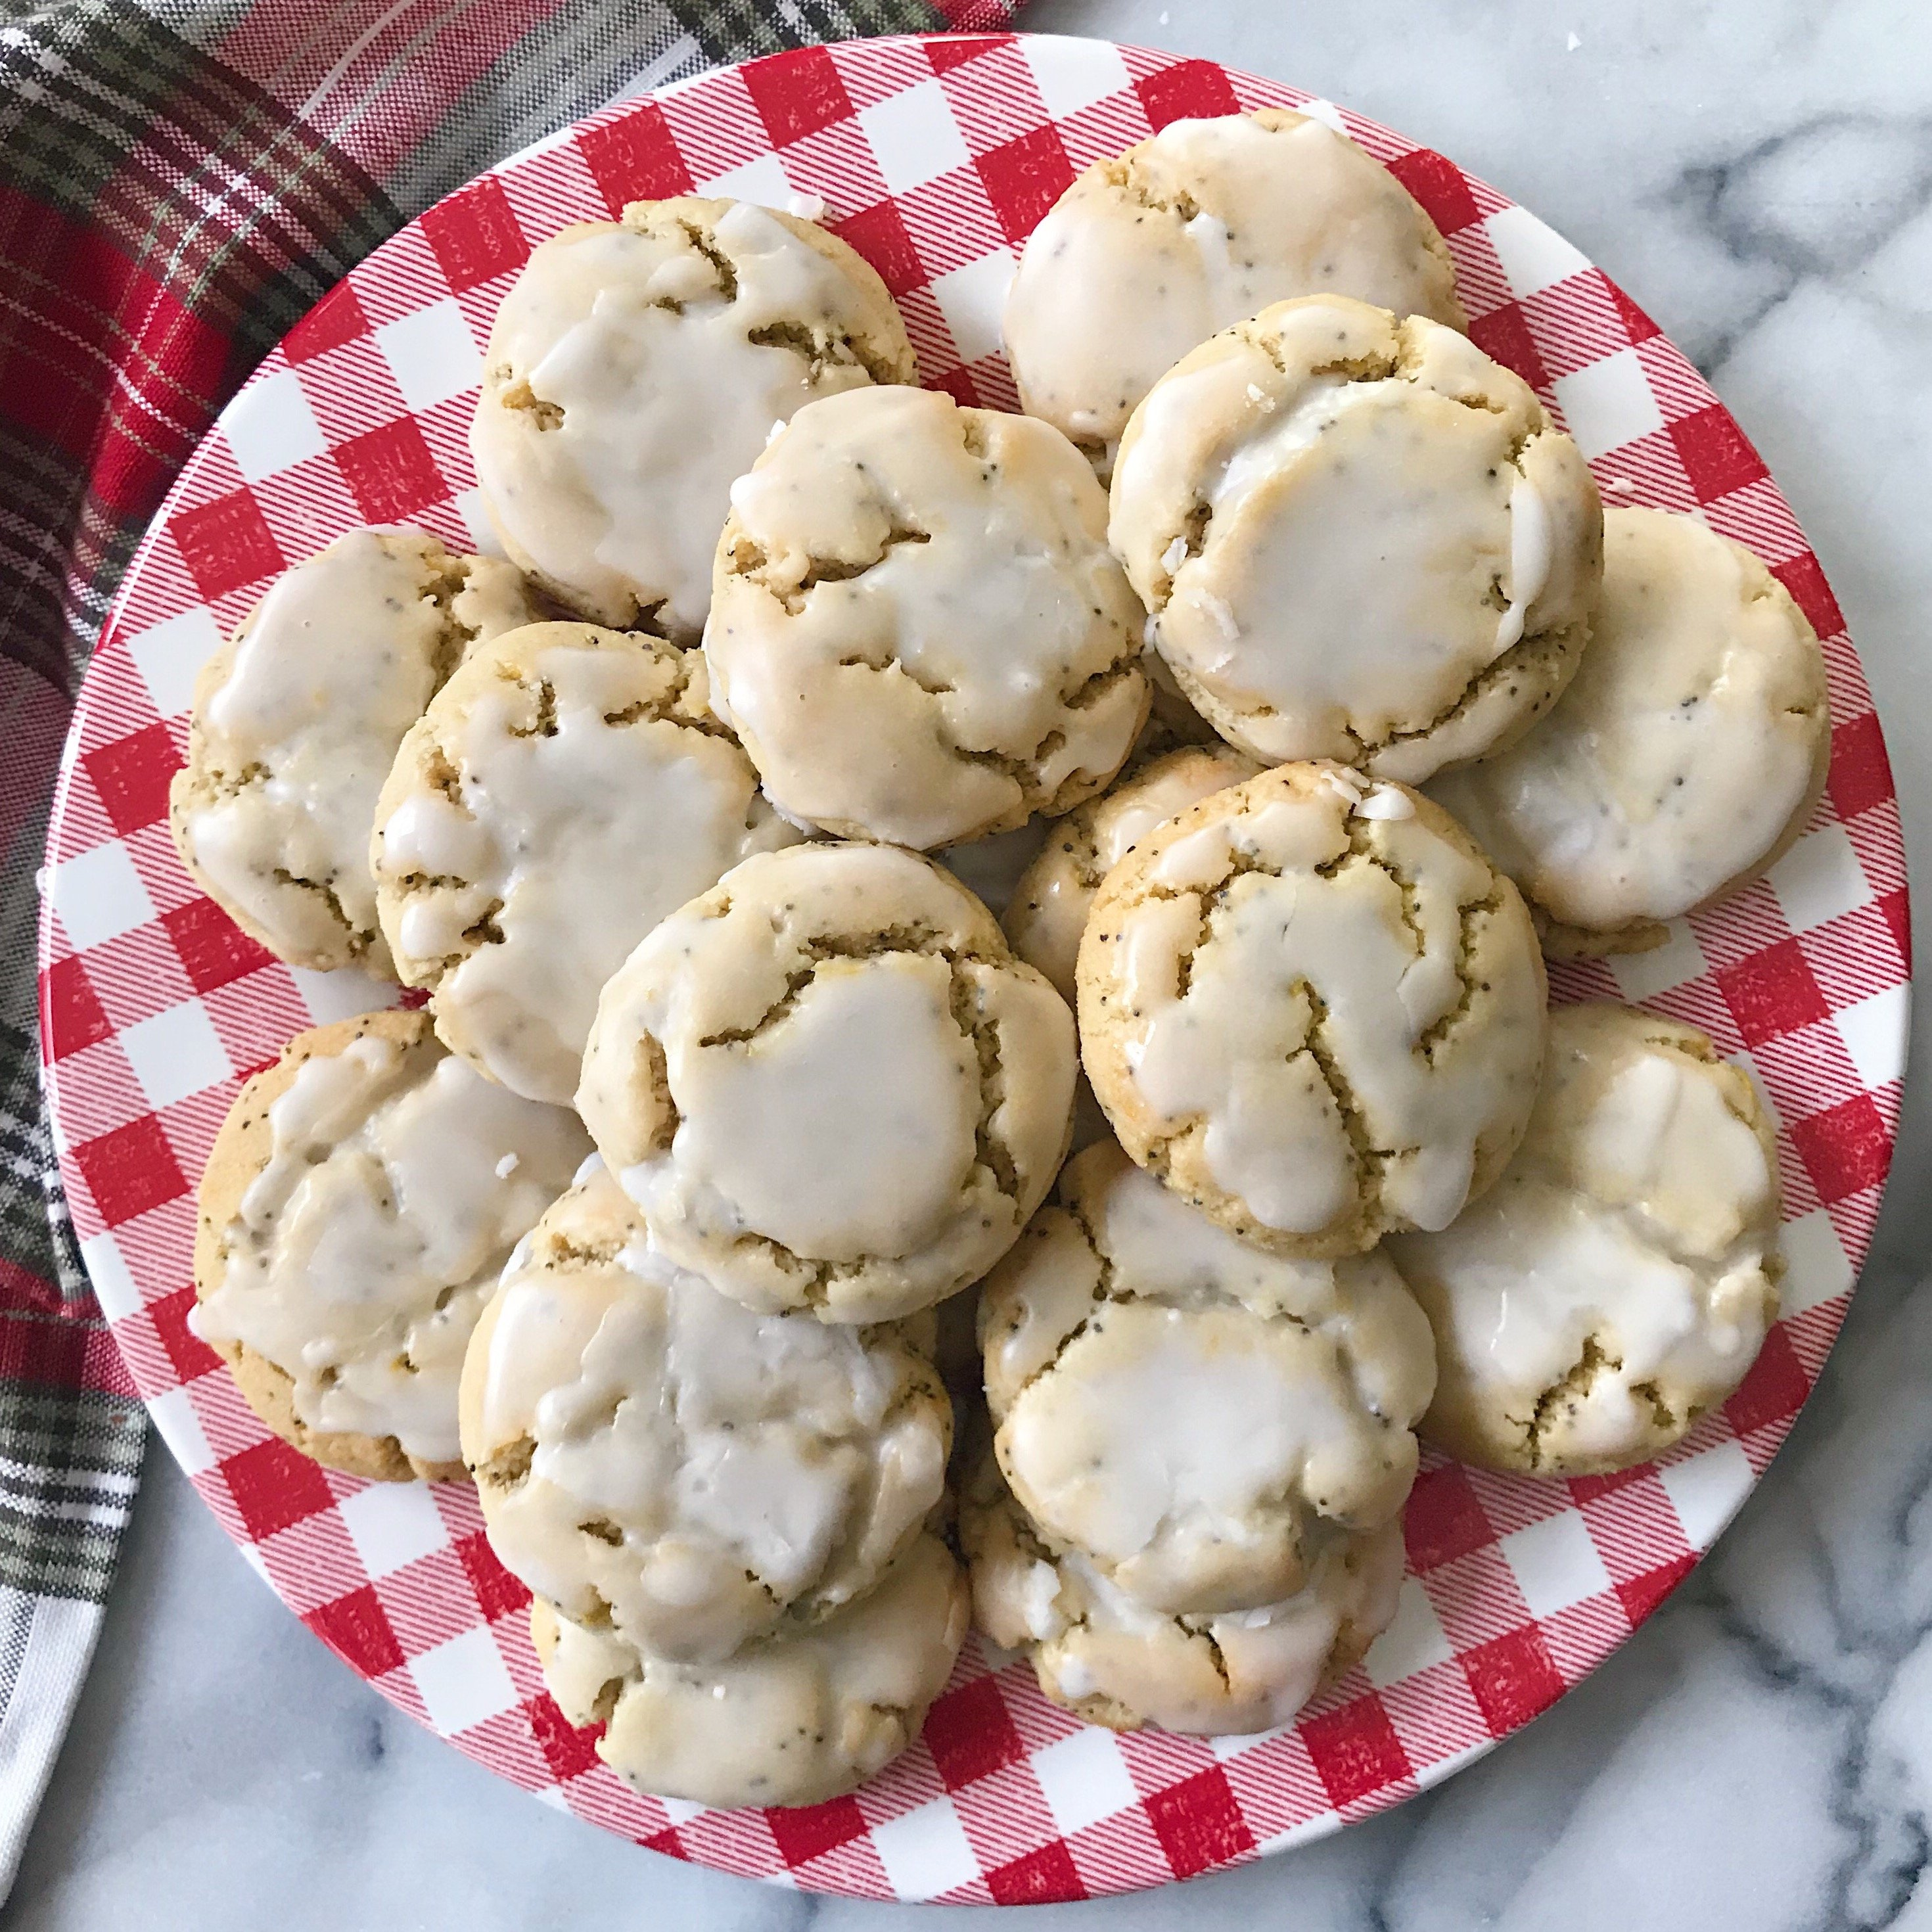 soft baked lemon poppyseed cookies gluten free vegan grain free #glutenfreerecipes www.healthygffamily.com